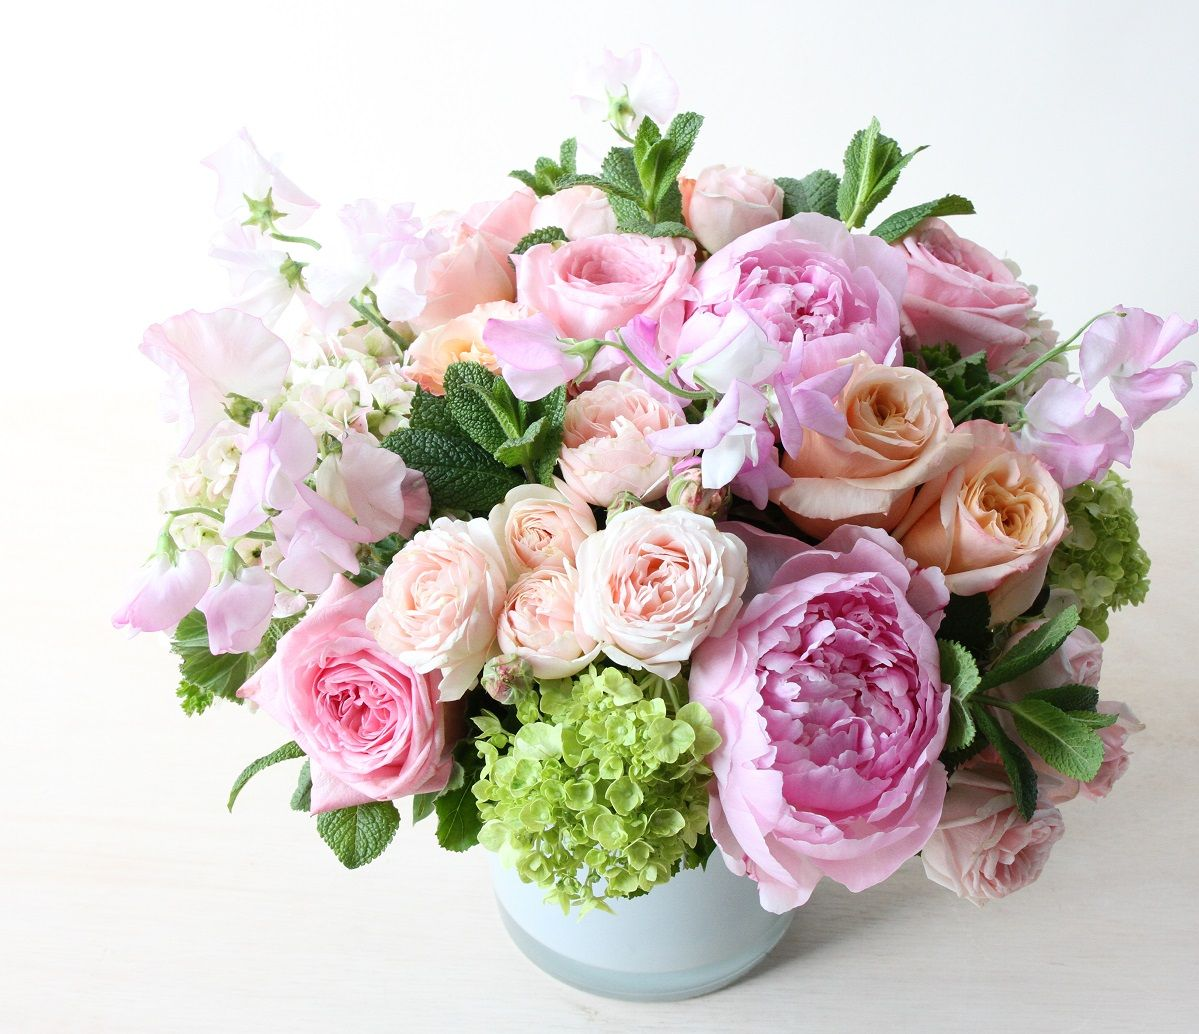 Pale Pink Peonies And Blushing Italian Sweet Pea: U0027Peony Rose Classicu0027 By  Winston